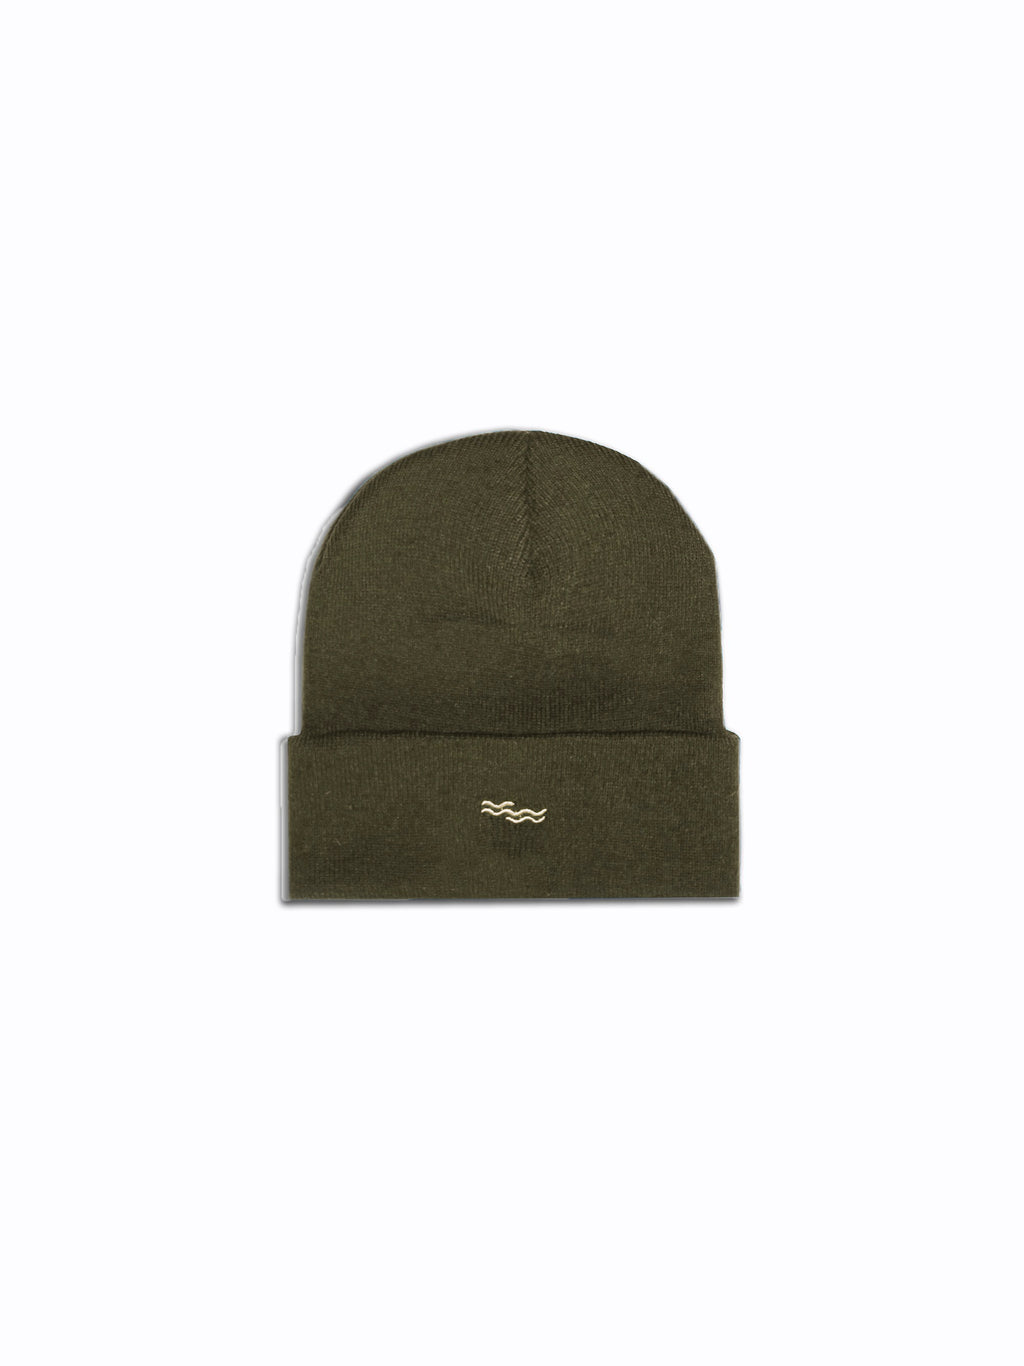 THE MILITARY GREEN BEANIE